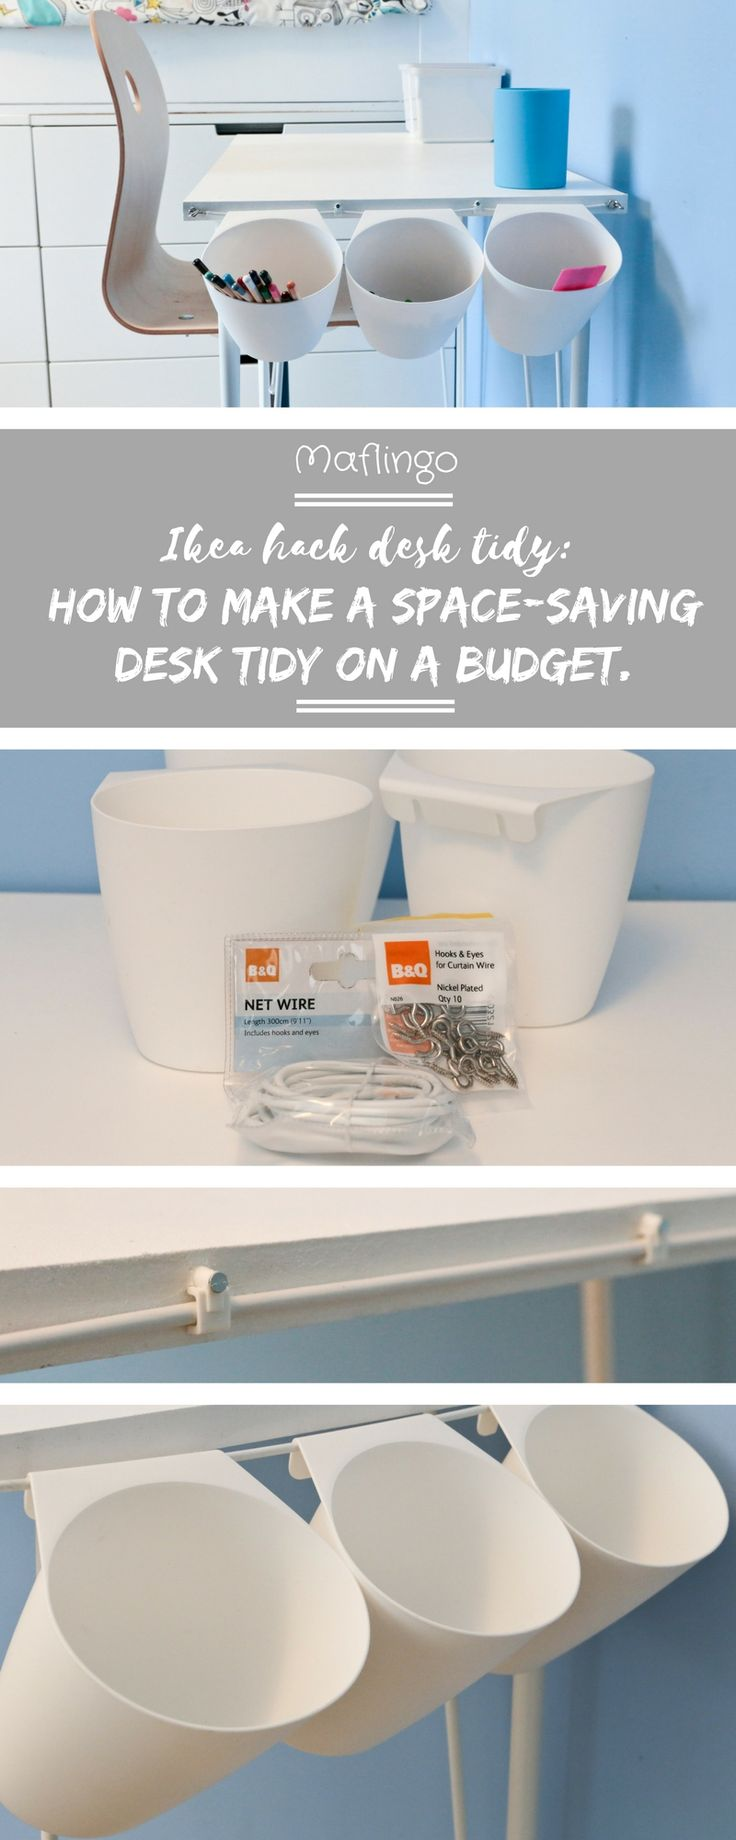 DIY project: Children's Ikea Hack Desk Tidy. To free up space on the MDF desk on IKEA Krille Legs I made, I made a desk tidy using net curtain wire and IKEA Bygel pots for organising pens and pencils. You can use Ikea Sunnersta Containers.Click through to Maflingo for my step by step tutorial.